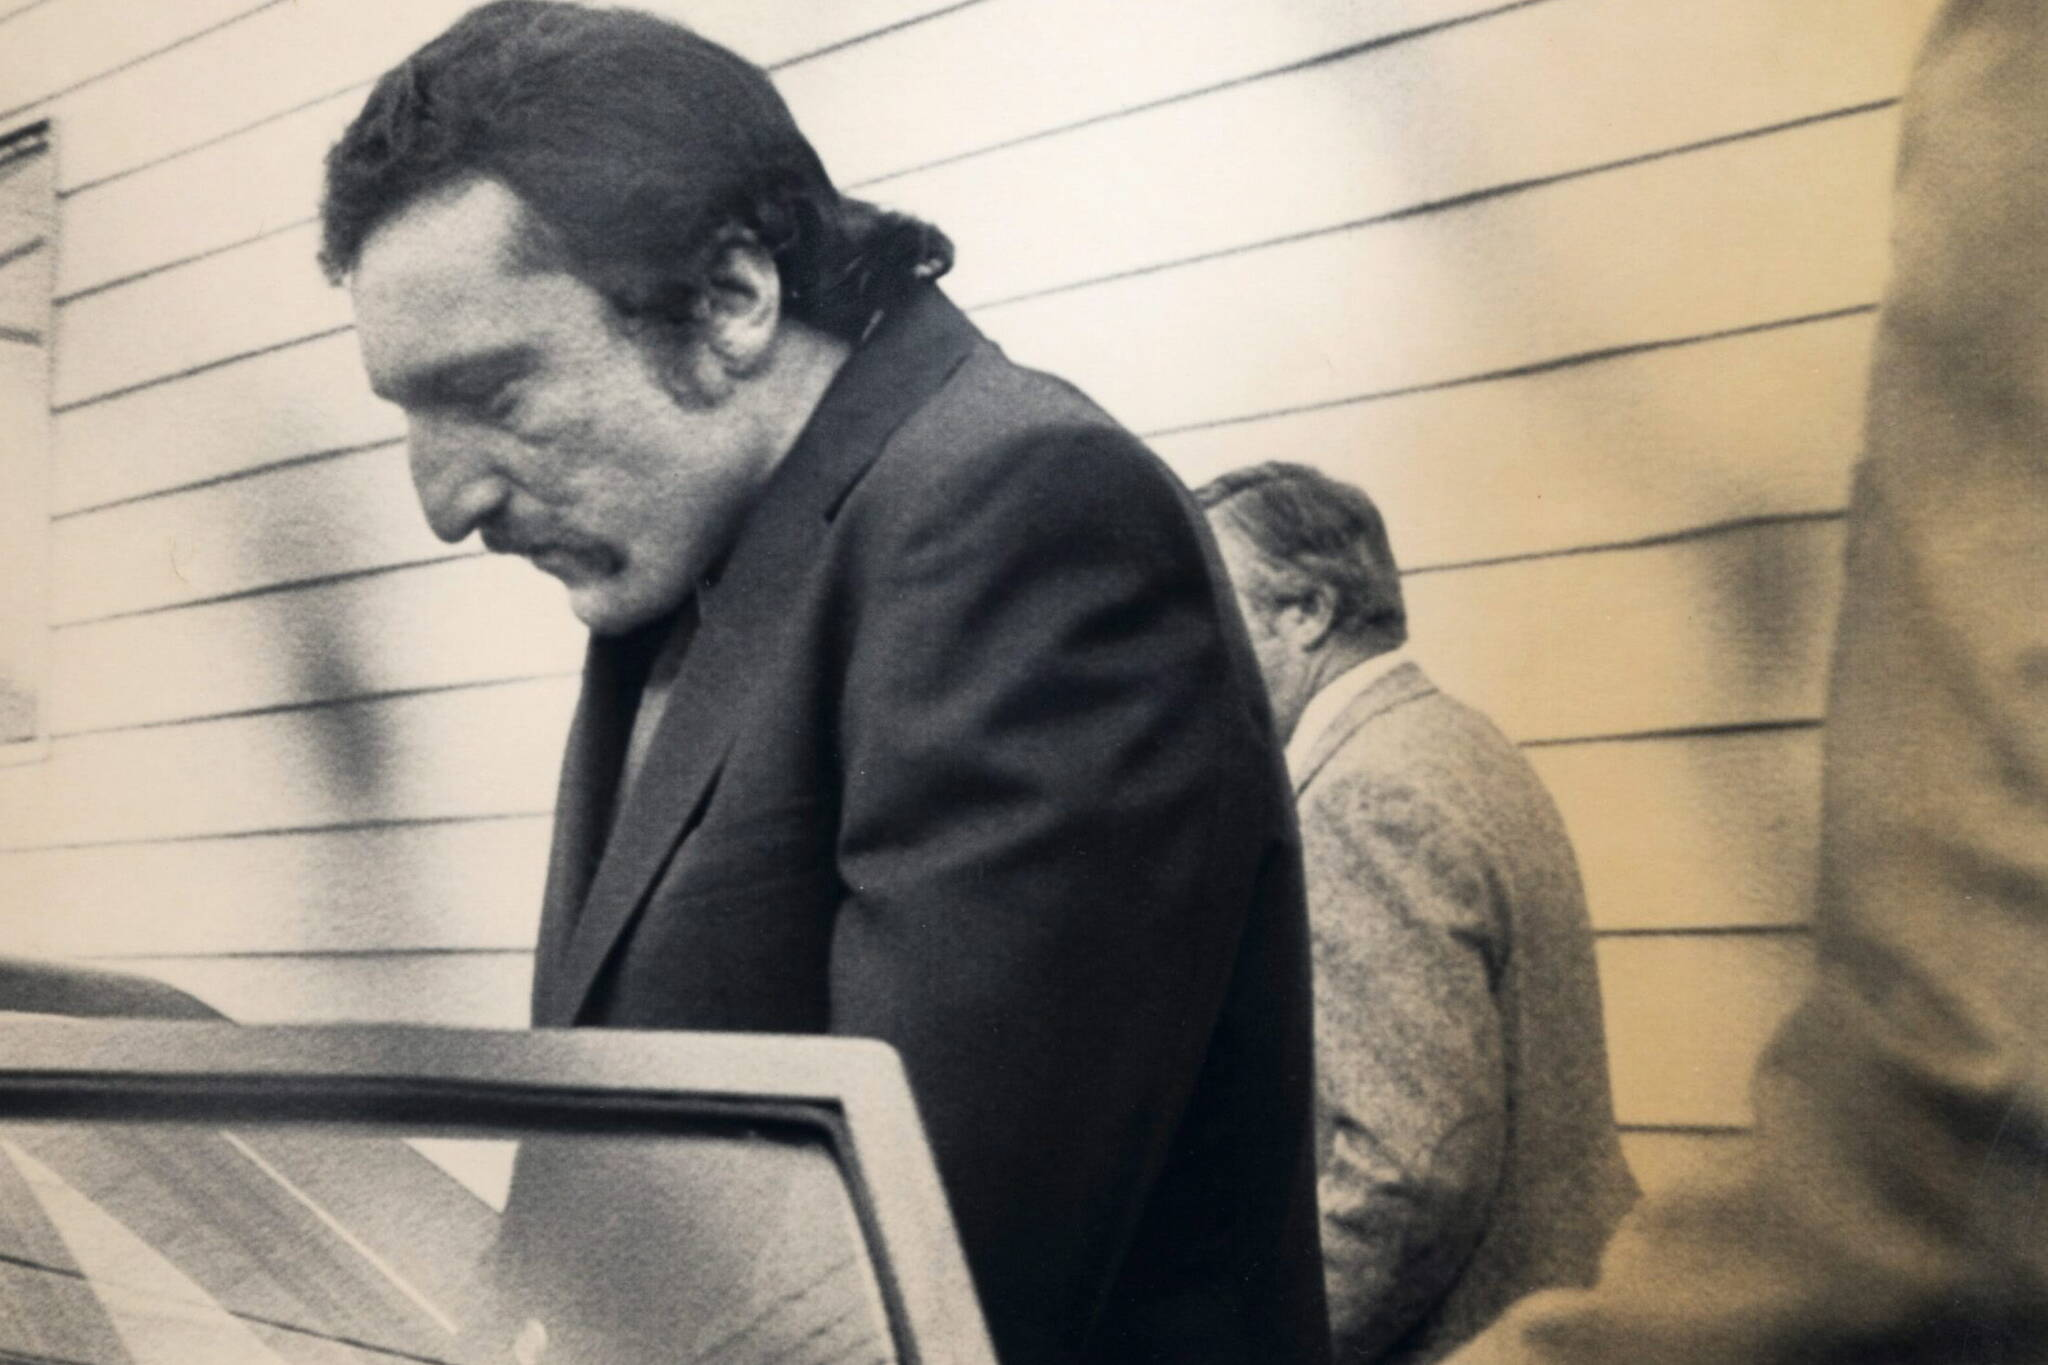 FILE - David Shearing, pictured in this 1983 file photo. David Ennis (formerly David Shearing) convicted of killing three generations of a BC family in a mass murder faces his first parole hearing Wednesday Oct. 22, 2008. Ennis was convicted in the deaths of six members of the Bentley- Johnson family while they were camping in Wells Gray Park, in the BC Interior, in 1982. THE CANADIAN PRESS/ files